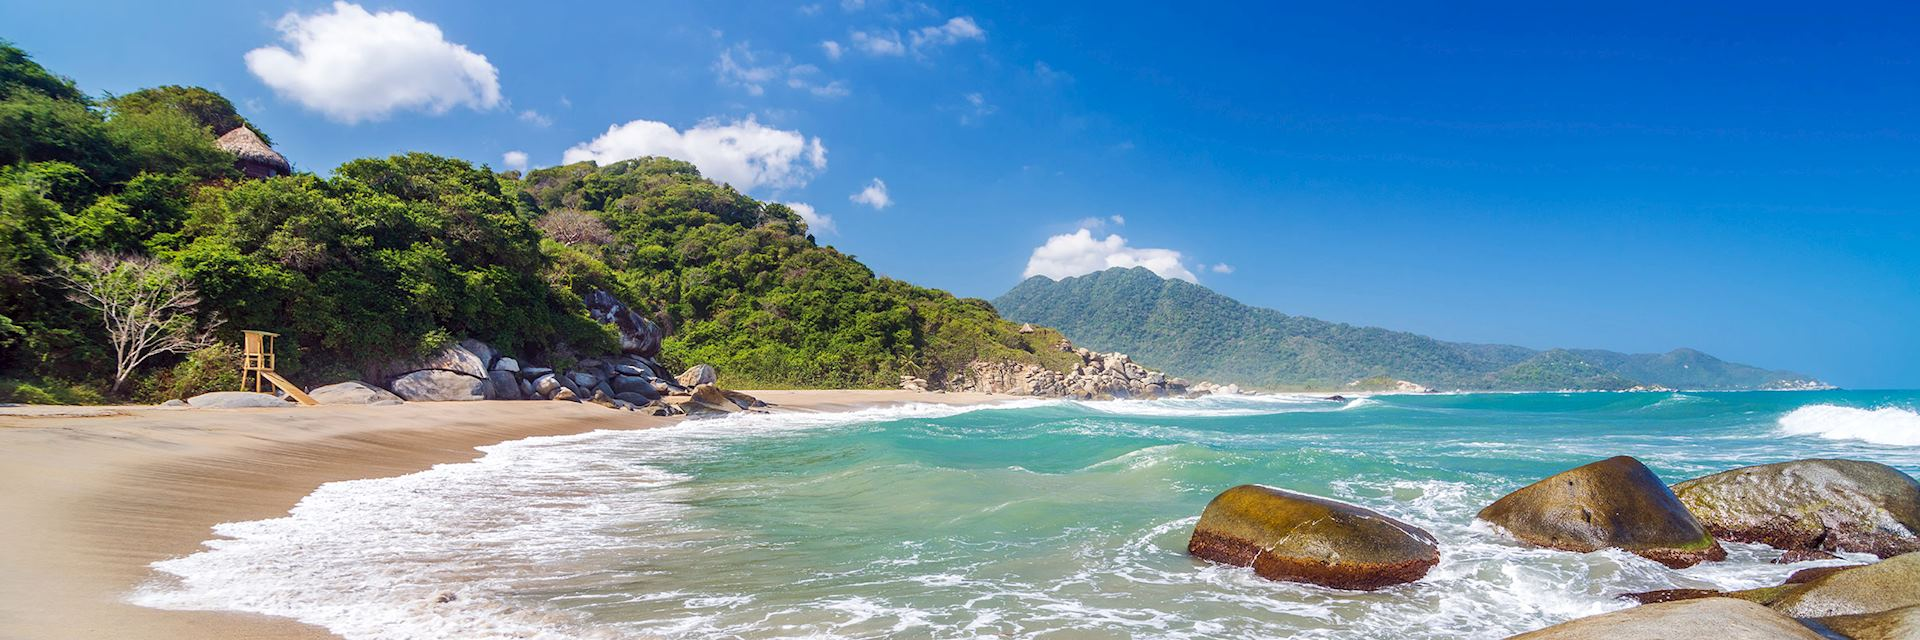 Beach in Tayrona National Park